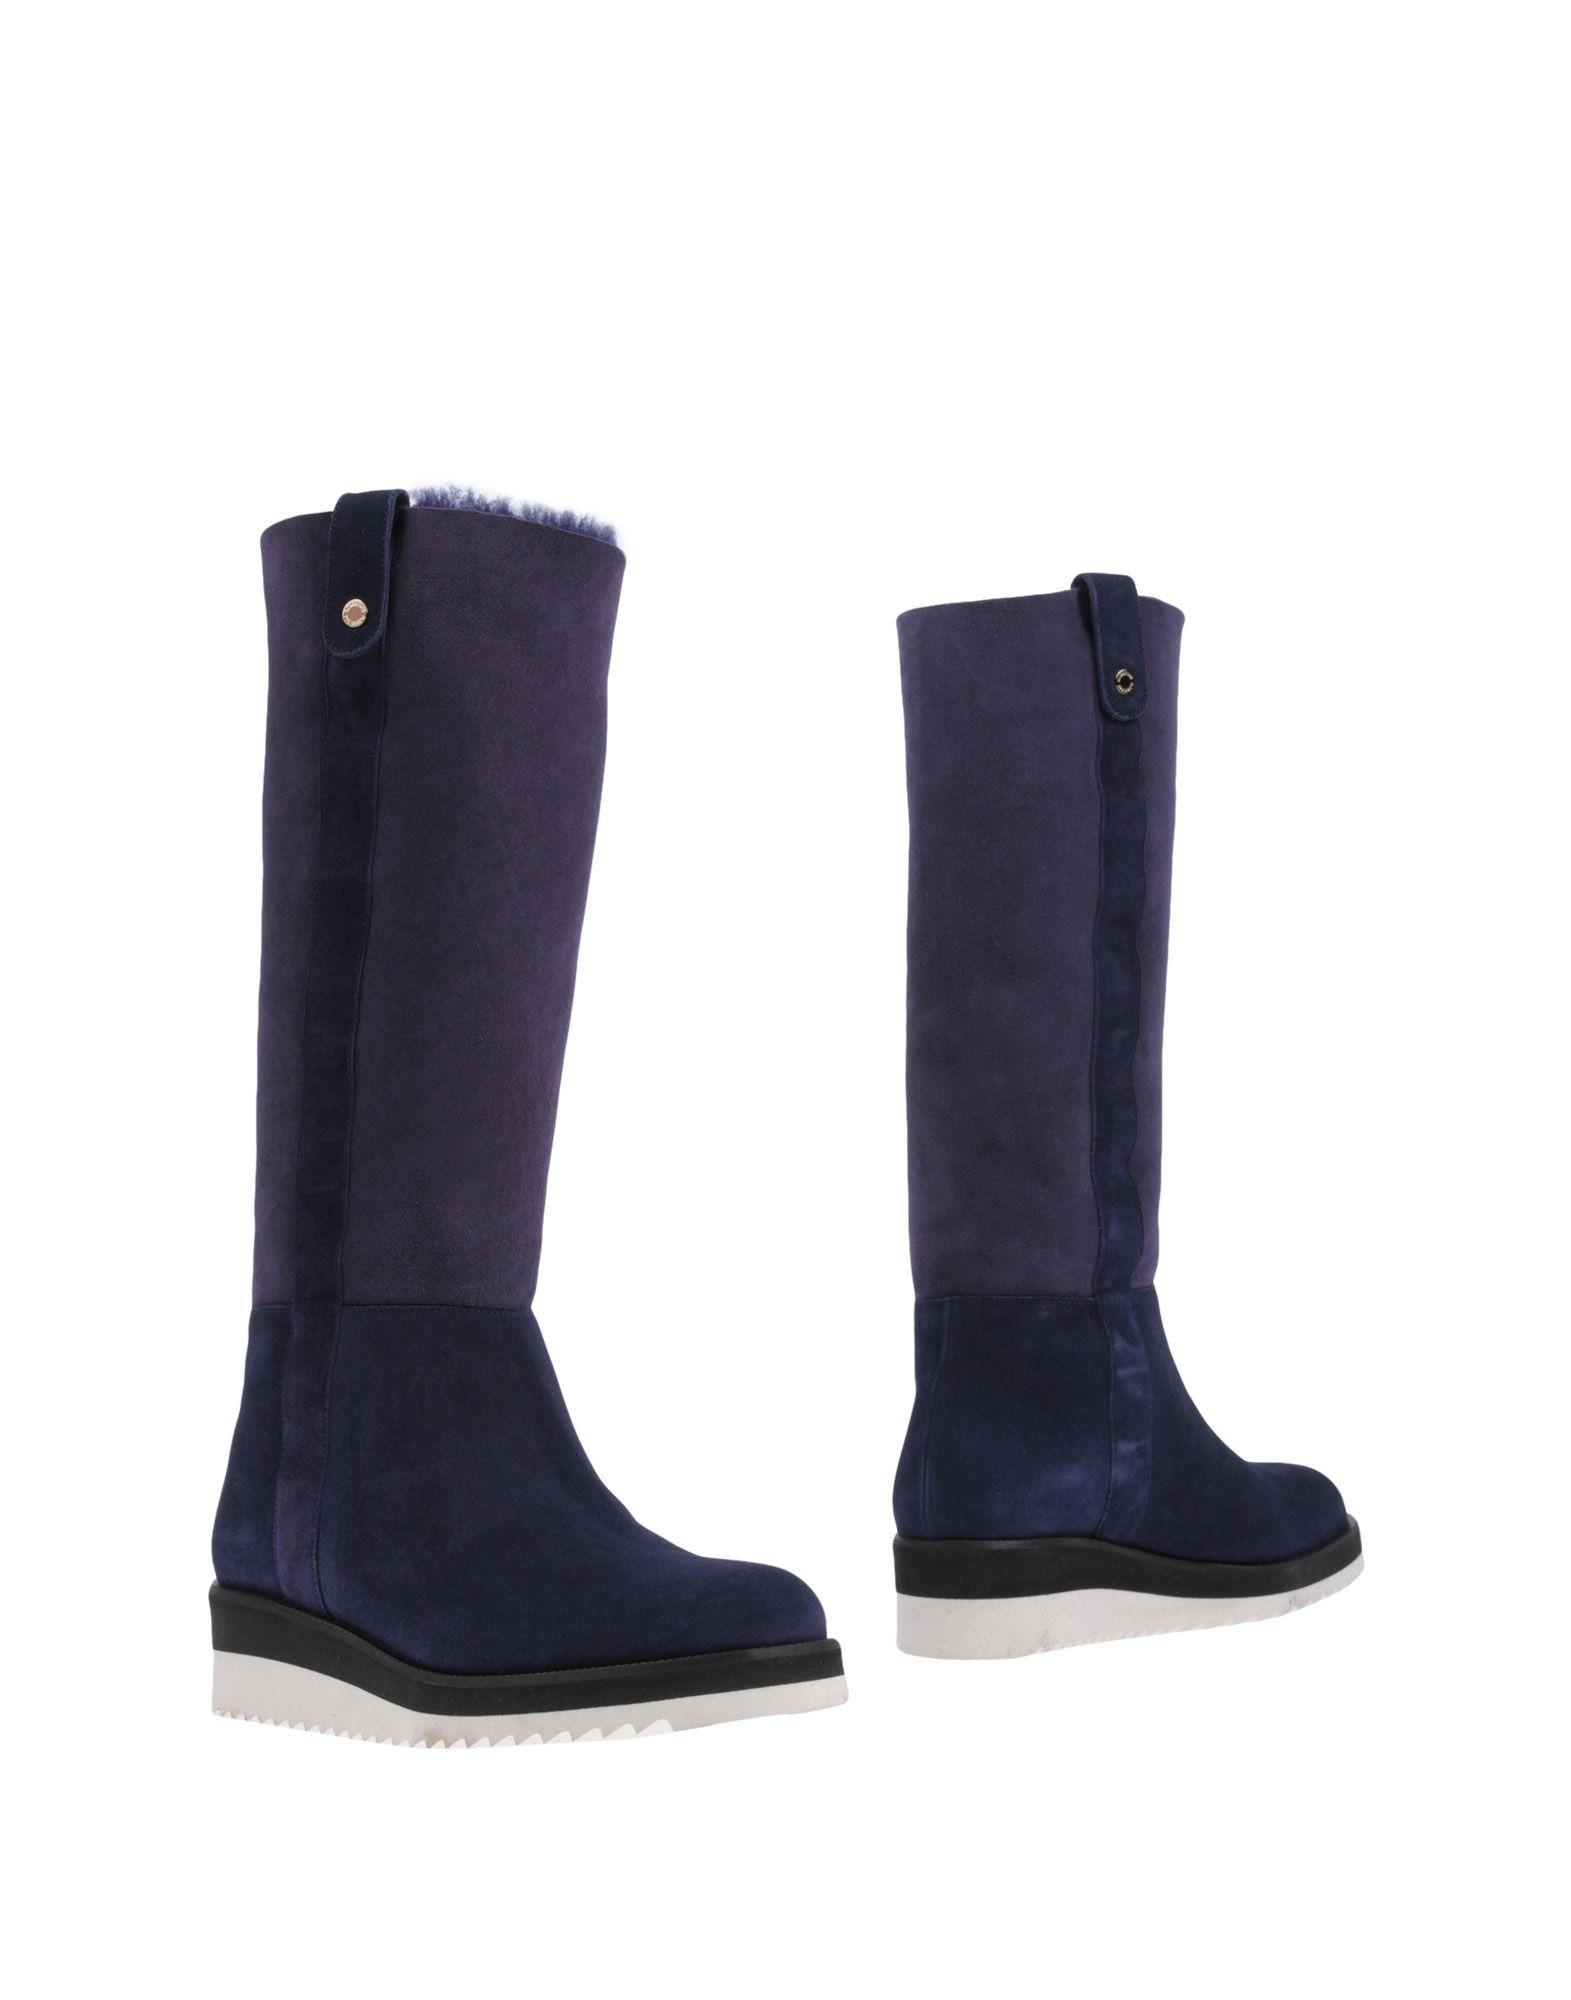 A.TESTONI Boots in Dark Purple